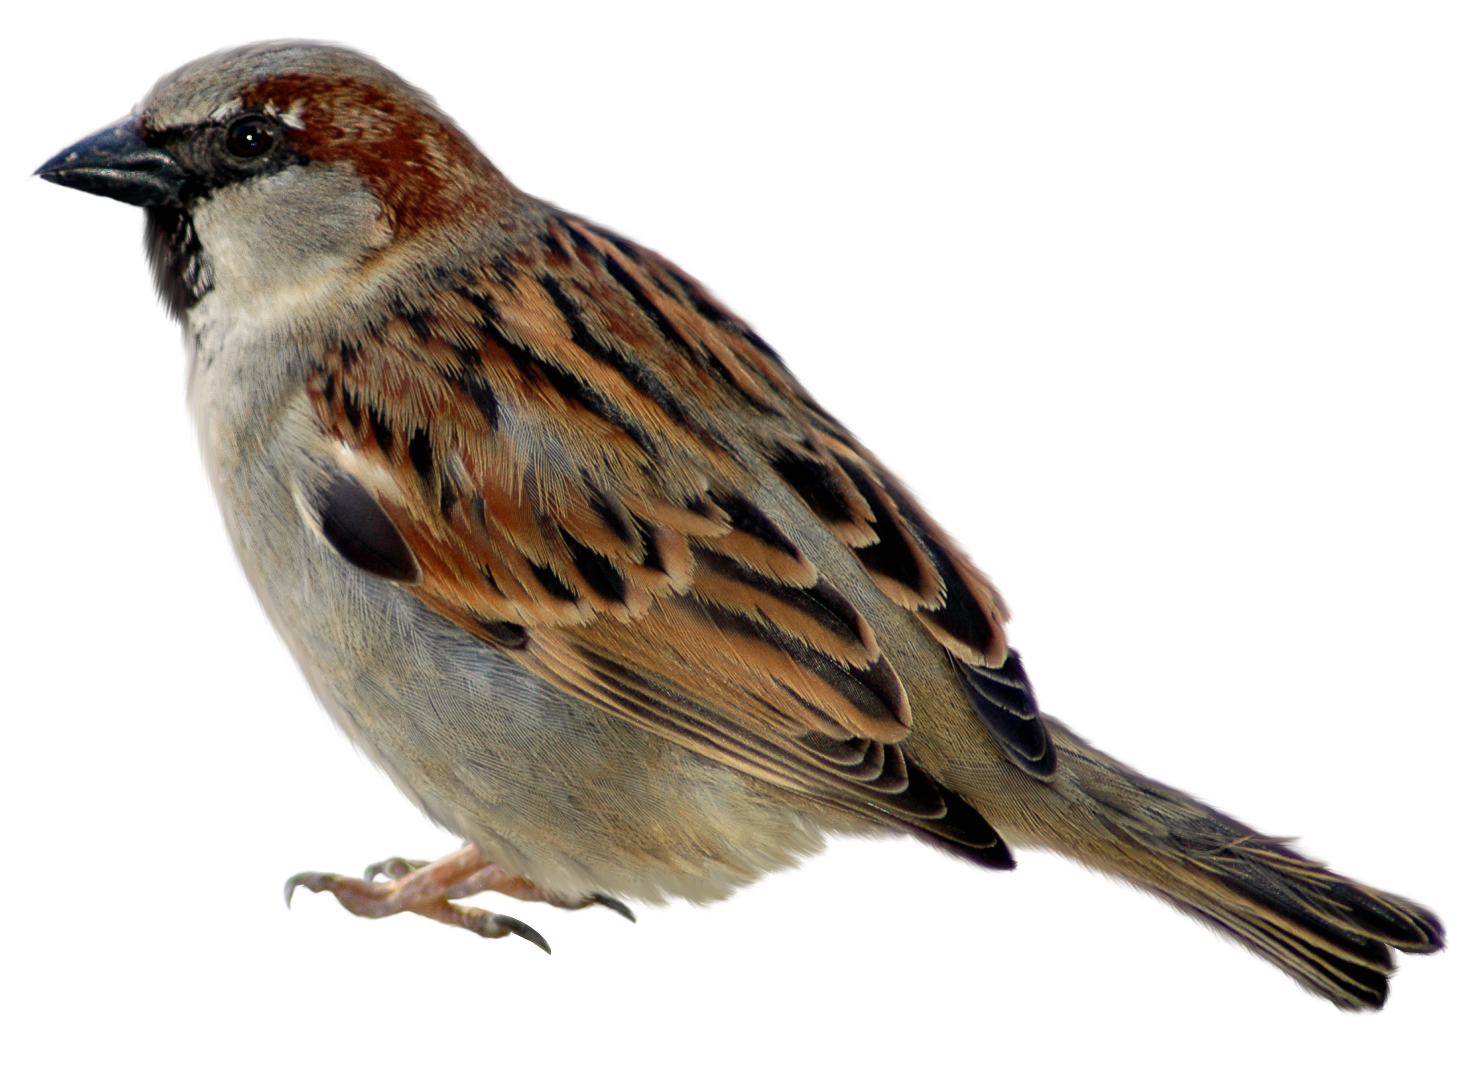 Sparrow PNG - 2966